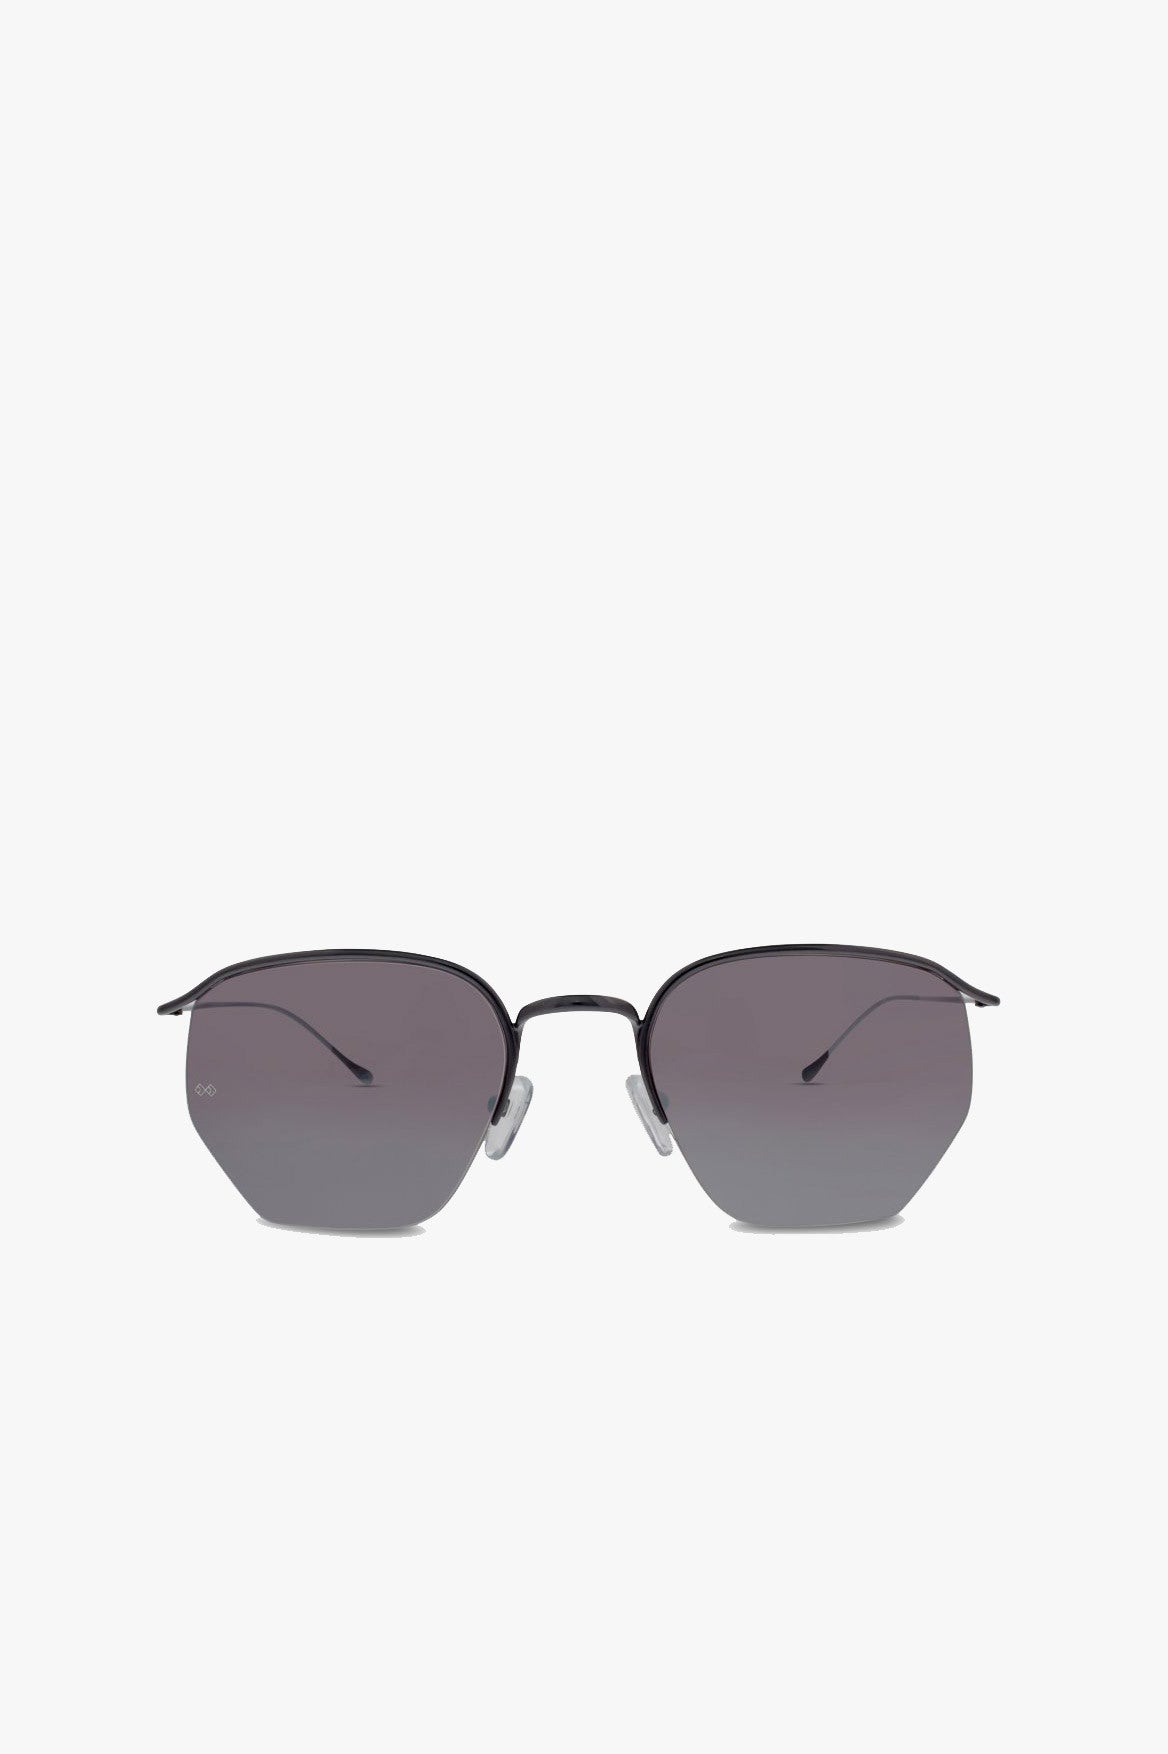 Geo 1 sunglasses in gunmetal